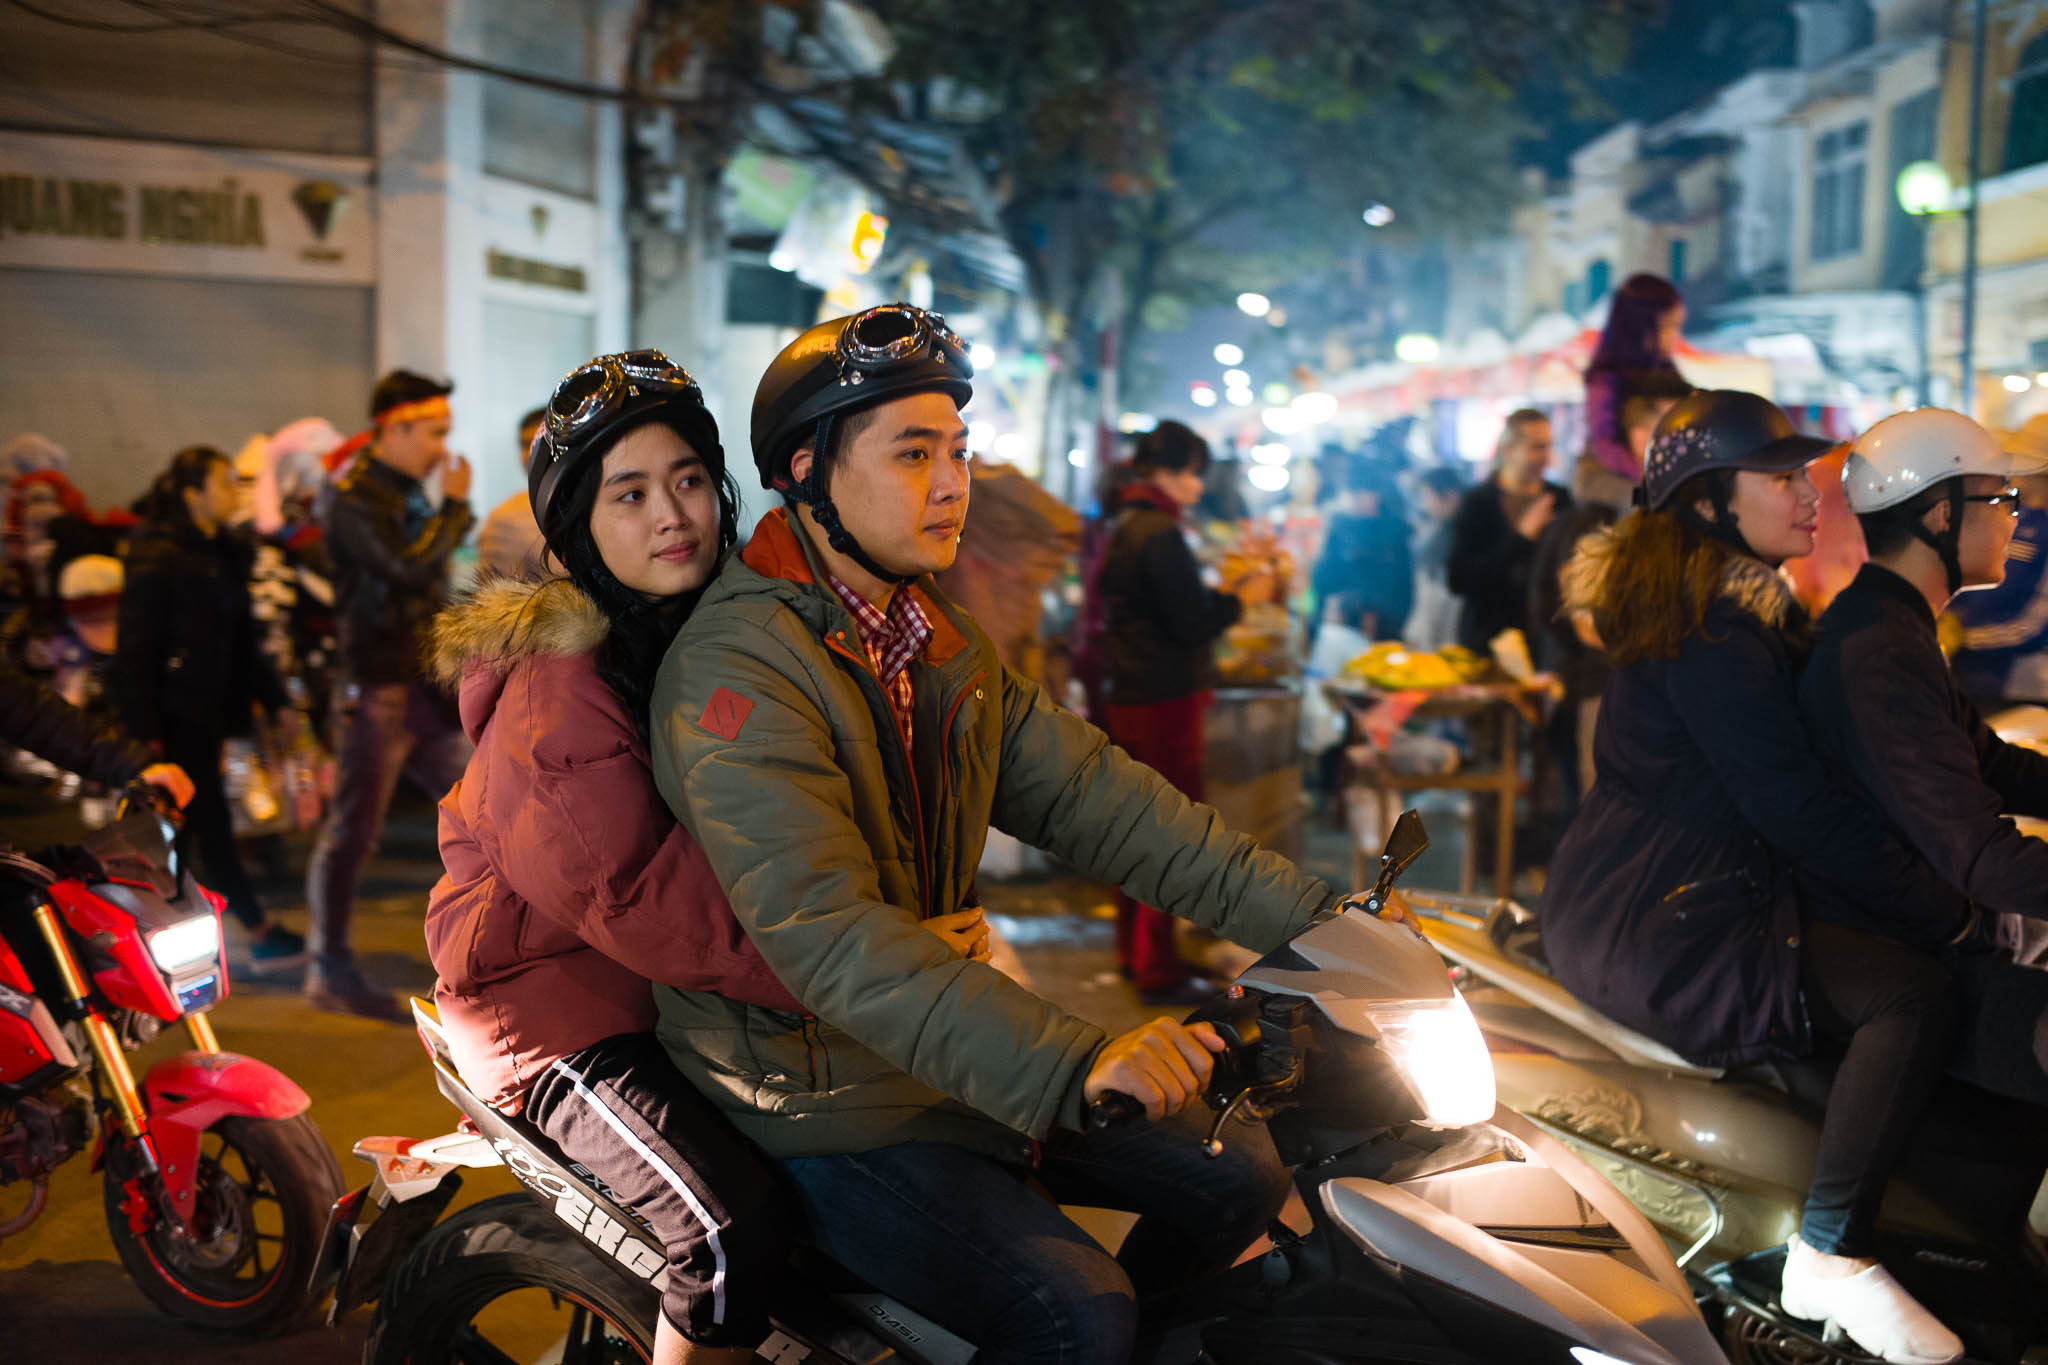 A couple rides through the streets of Hanoi – bikes are everywhere here. Leica M10-P, Summilux-M 35mm f/1.4 ASPH.